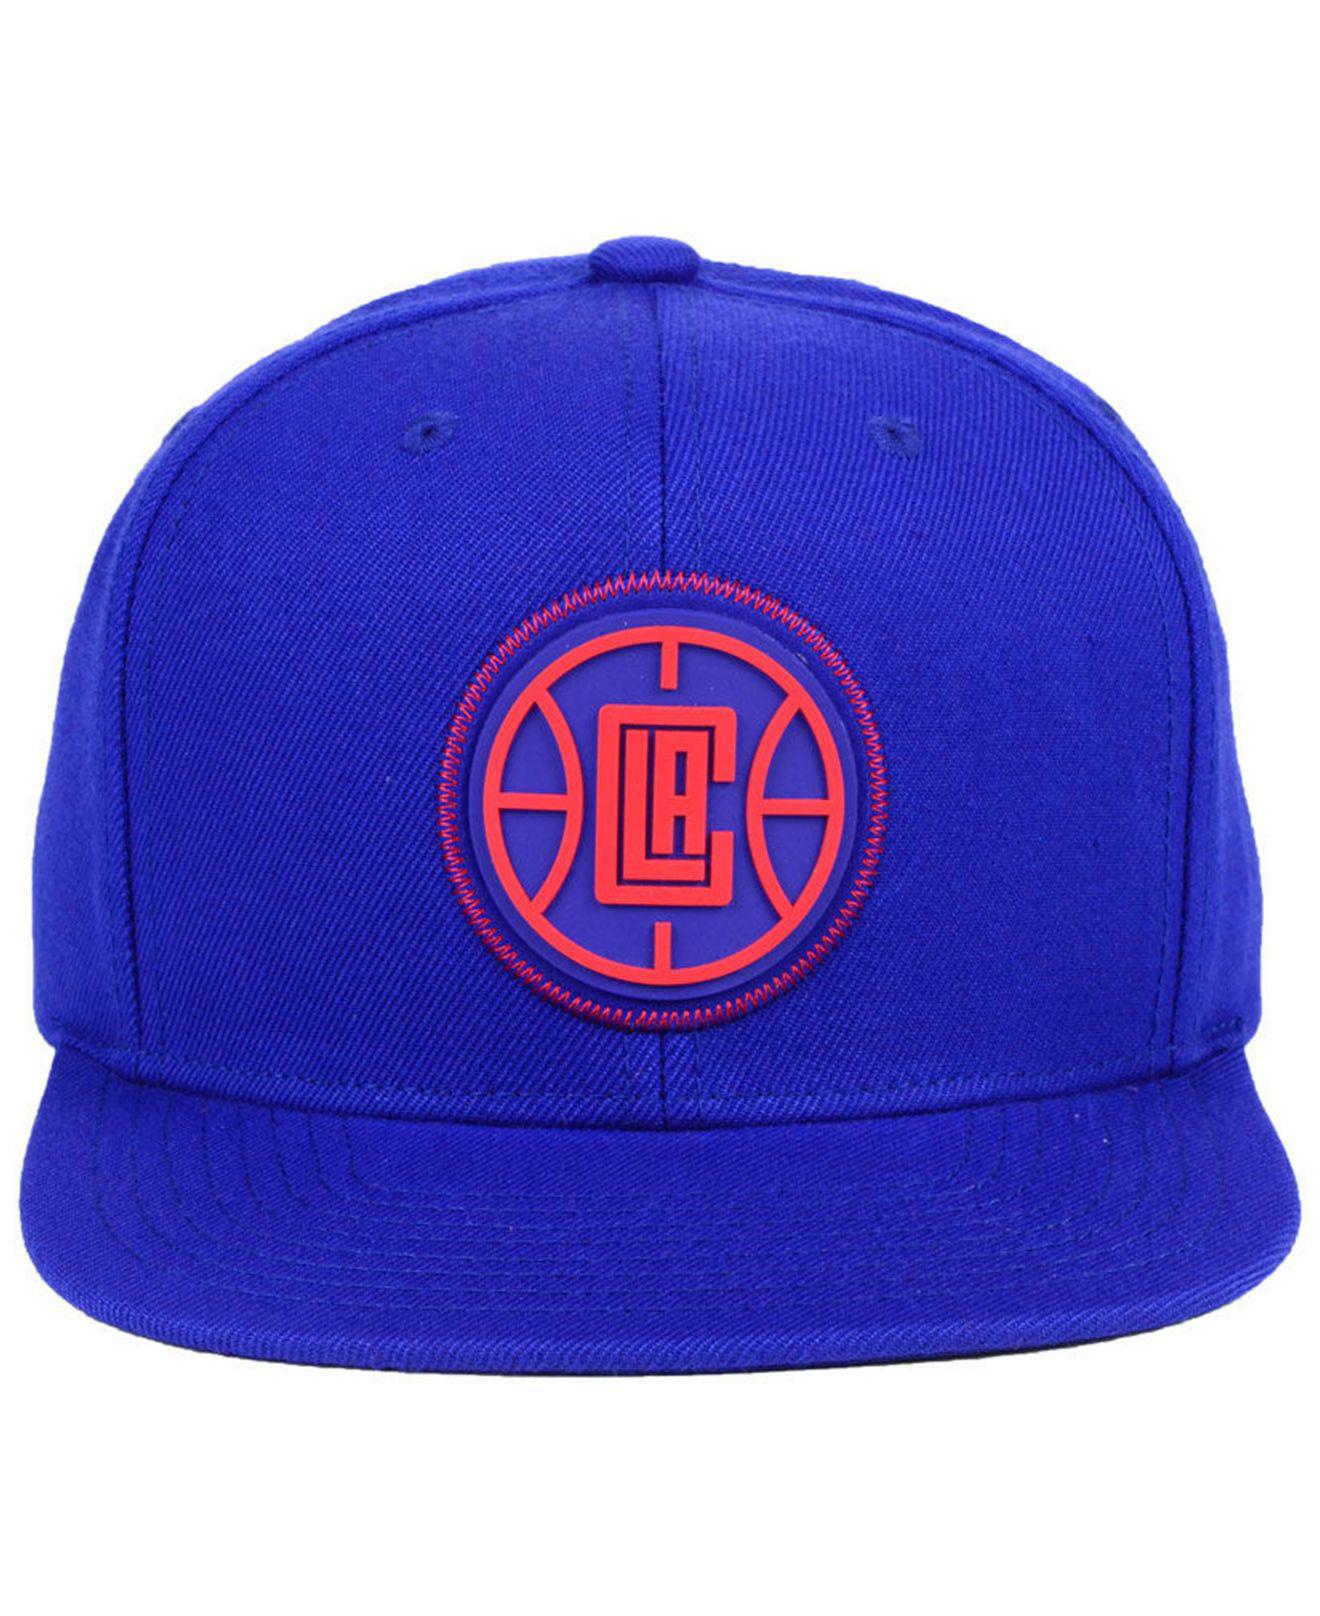 separation shoes fece3 e83dd Lyst - Mitchell   Ness Los Angeles Clippers Zig Zag Snapback Cap in Blue  for Men